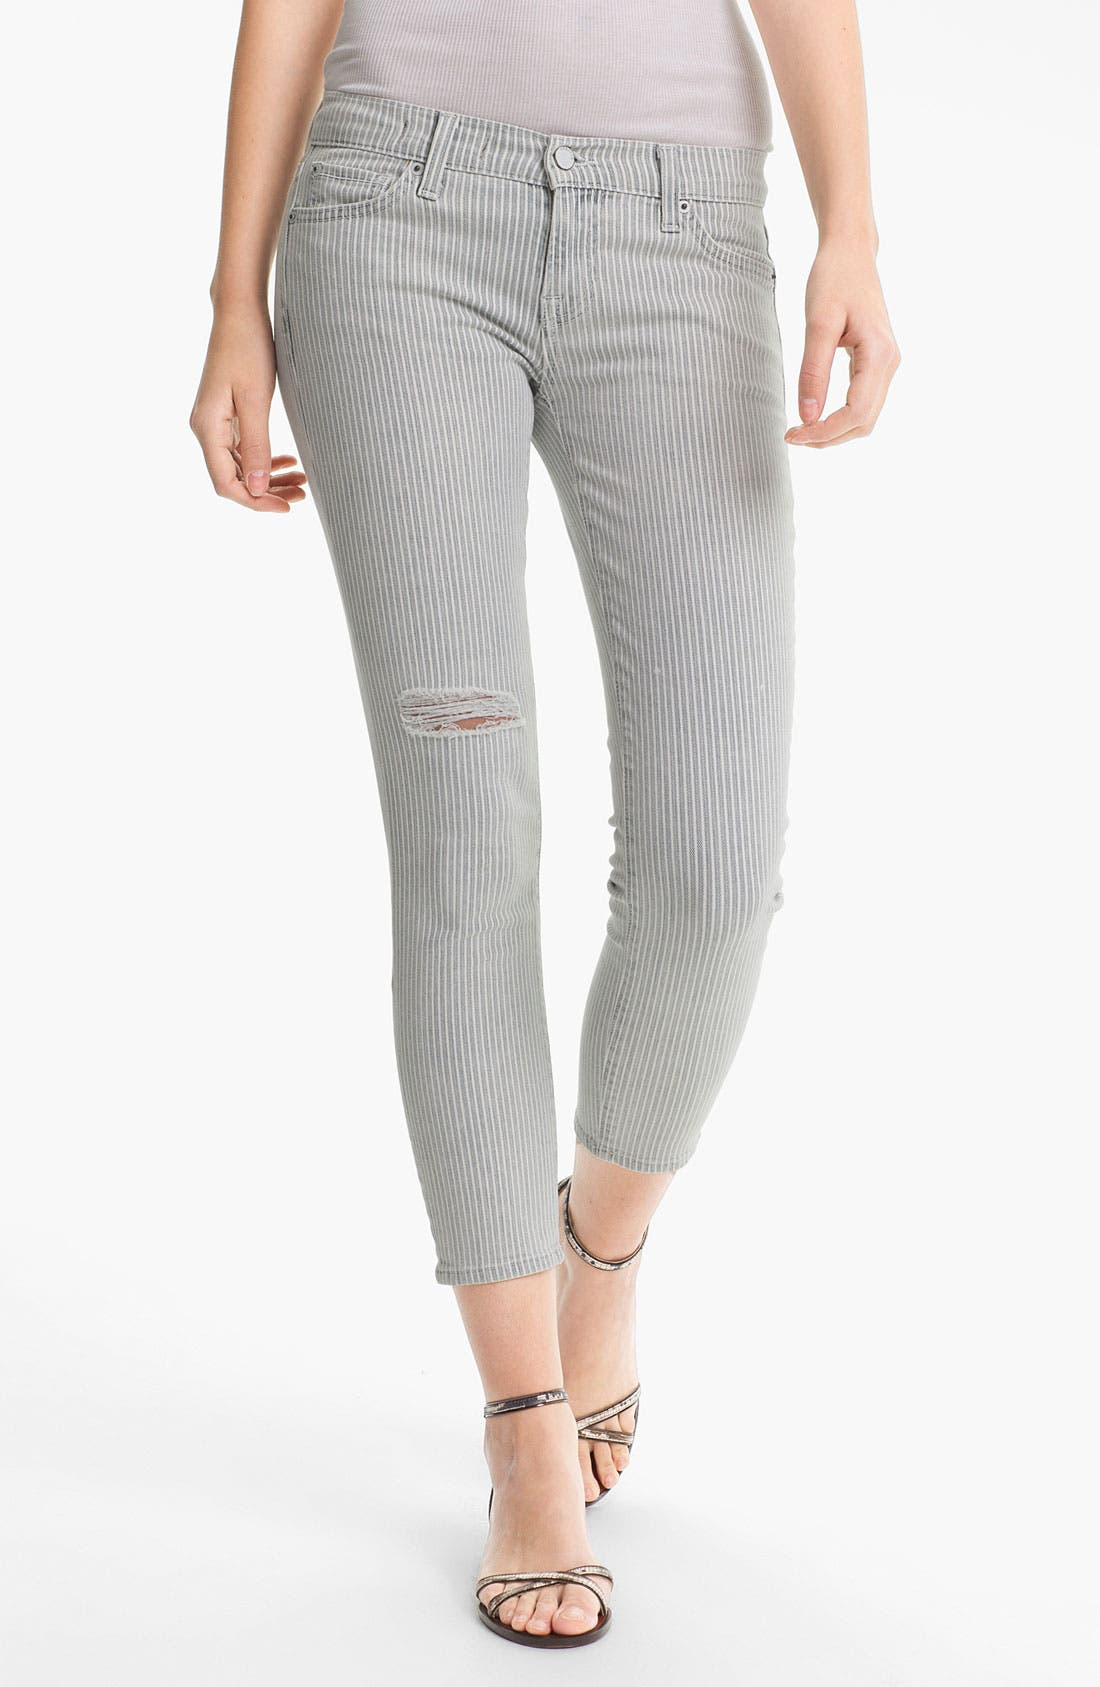 Main Image - TEXTILE Elizabeth and James 'Ozzy' Conductor Stripe Stretch Jeans